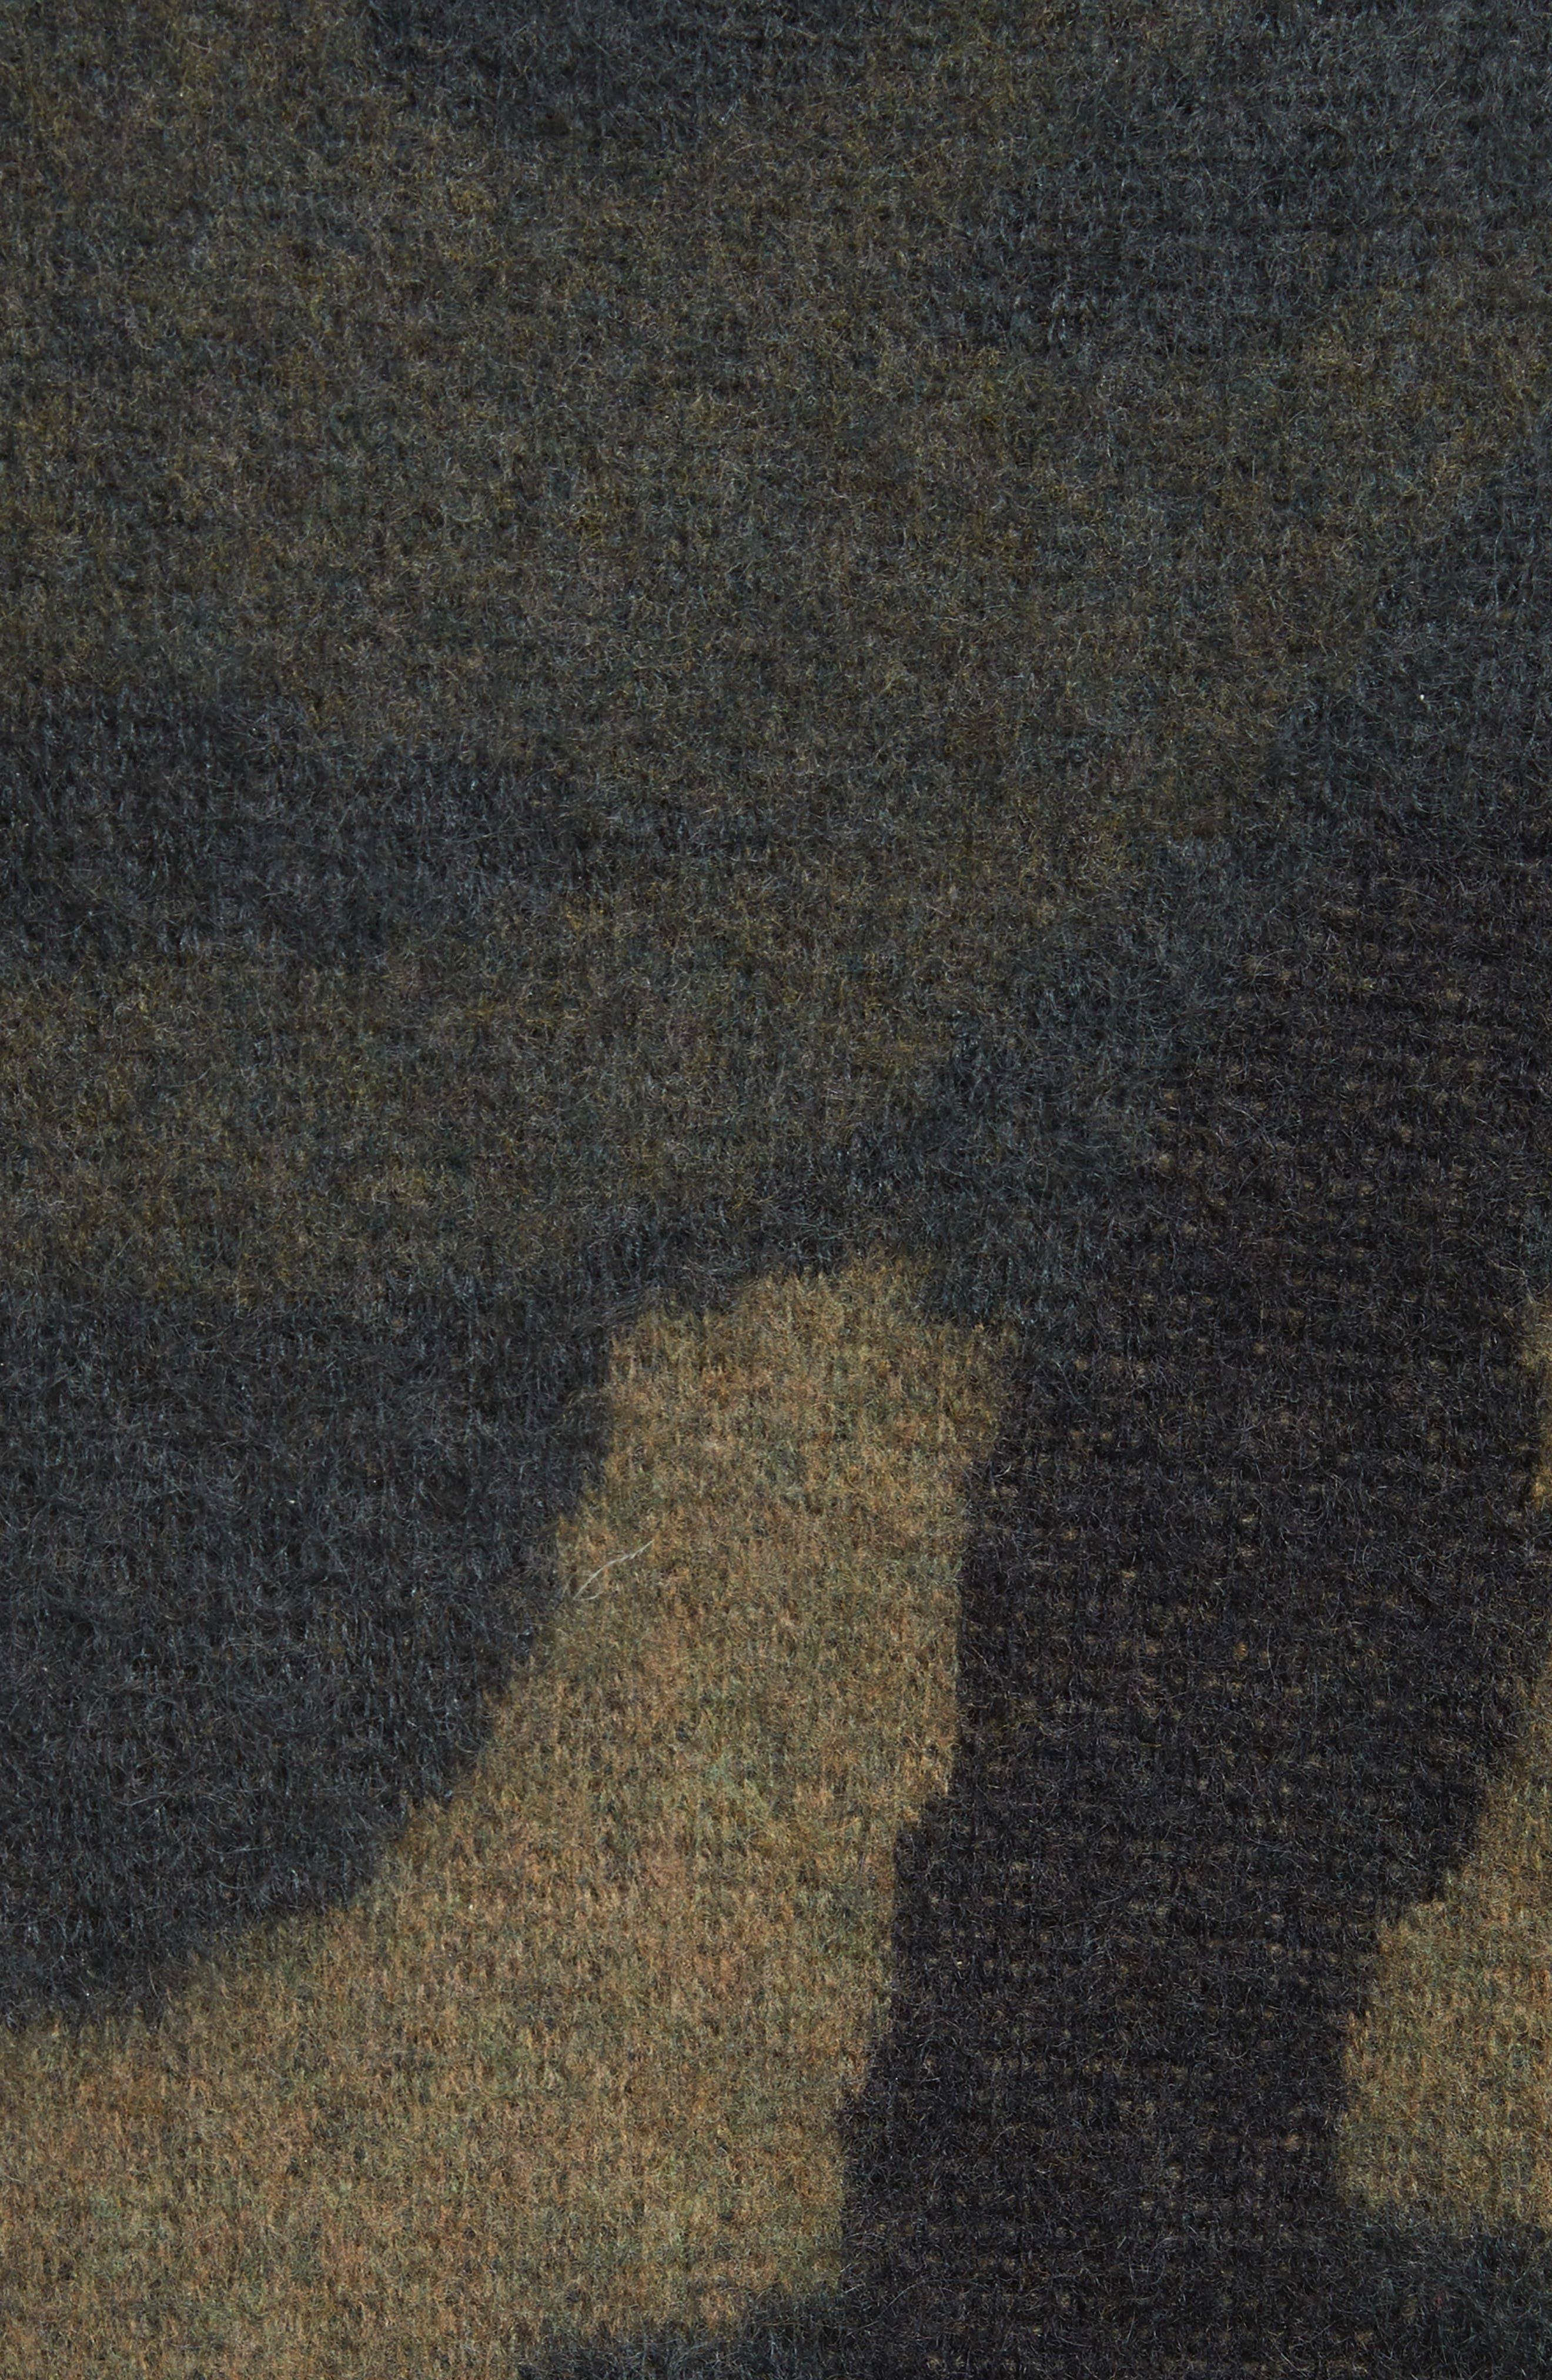 Sinclair Camouflage Jacquard Sweater,                             Alternate thumbnail 5, color,                             319